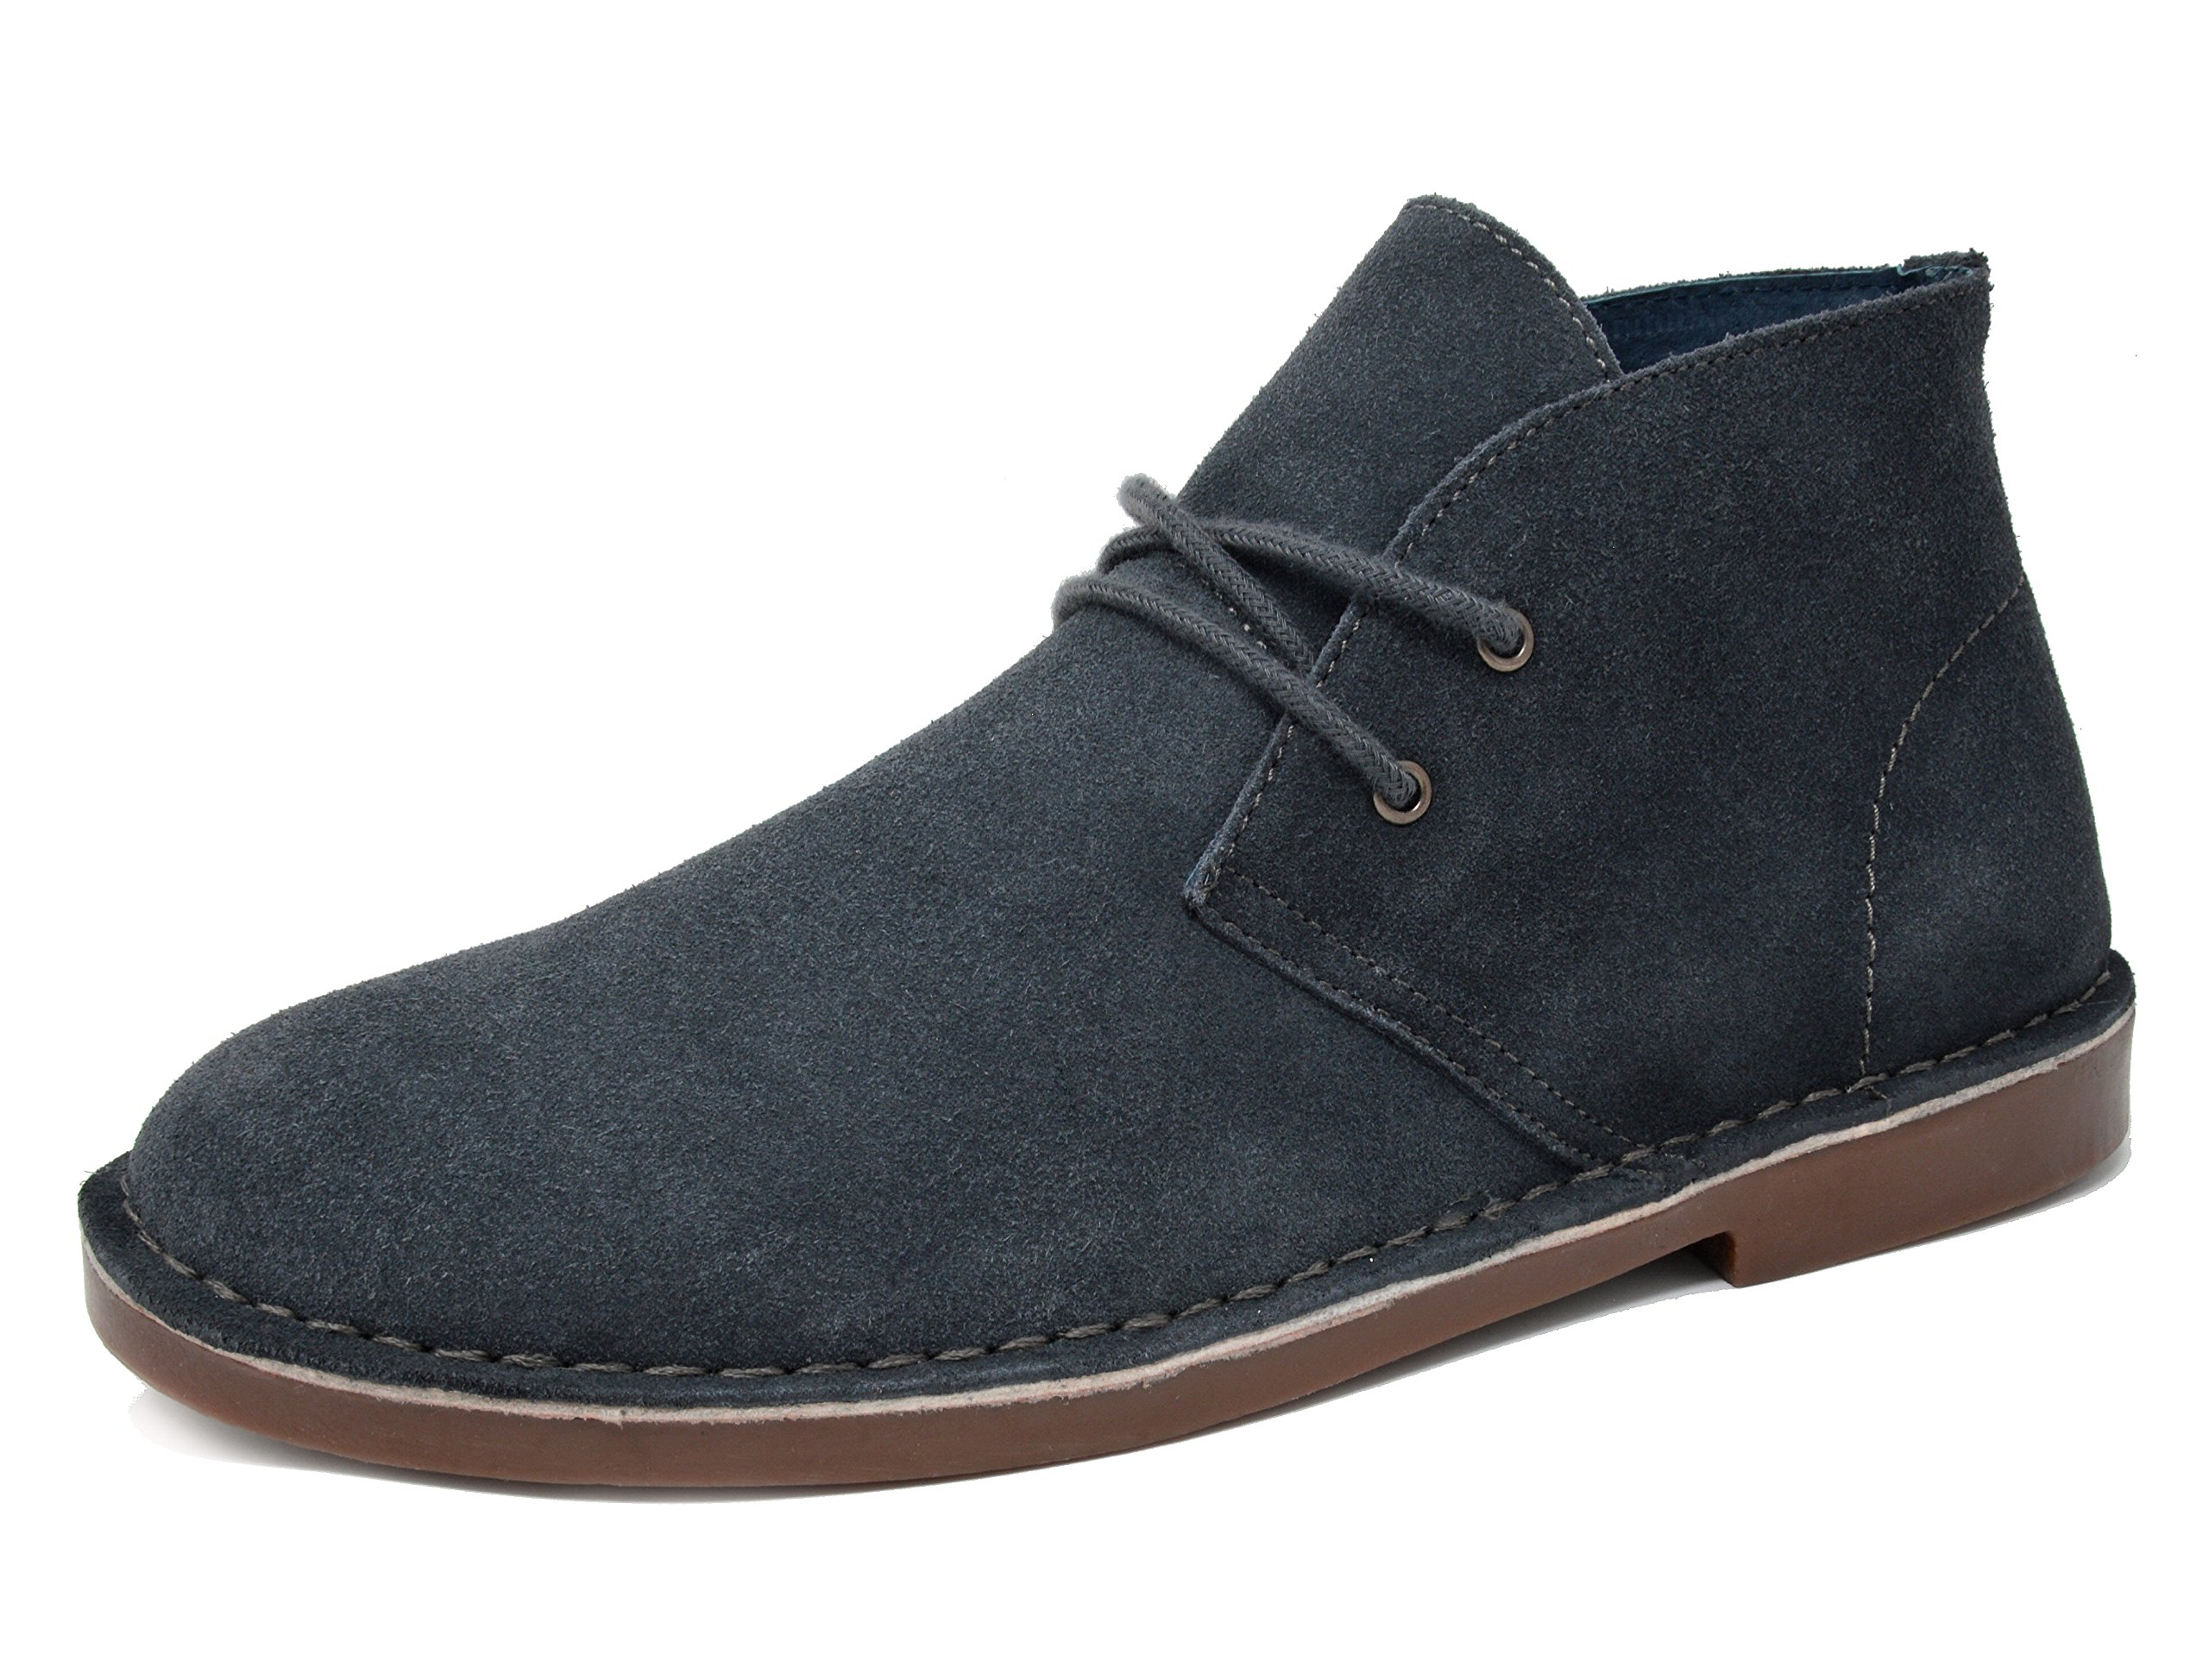 Bruno Marc Men's Francisco-High Grey Suede Leather Chukka Desert Oxford Ankle Boots - 8 M US